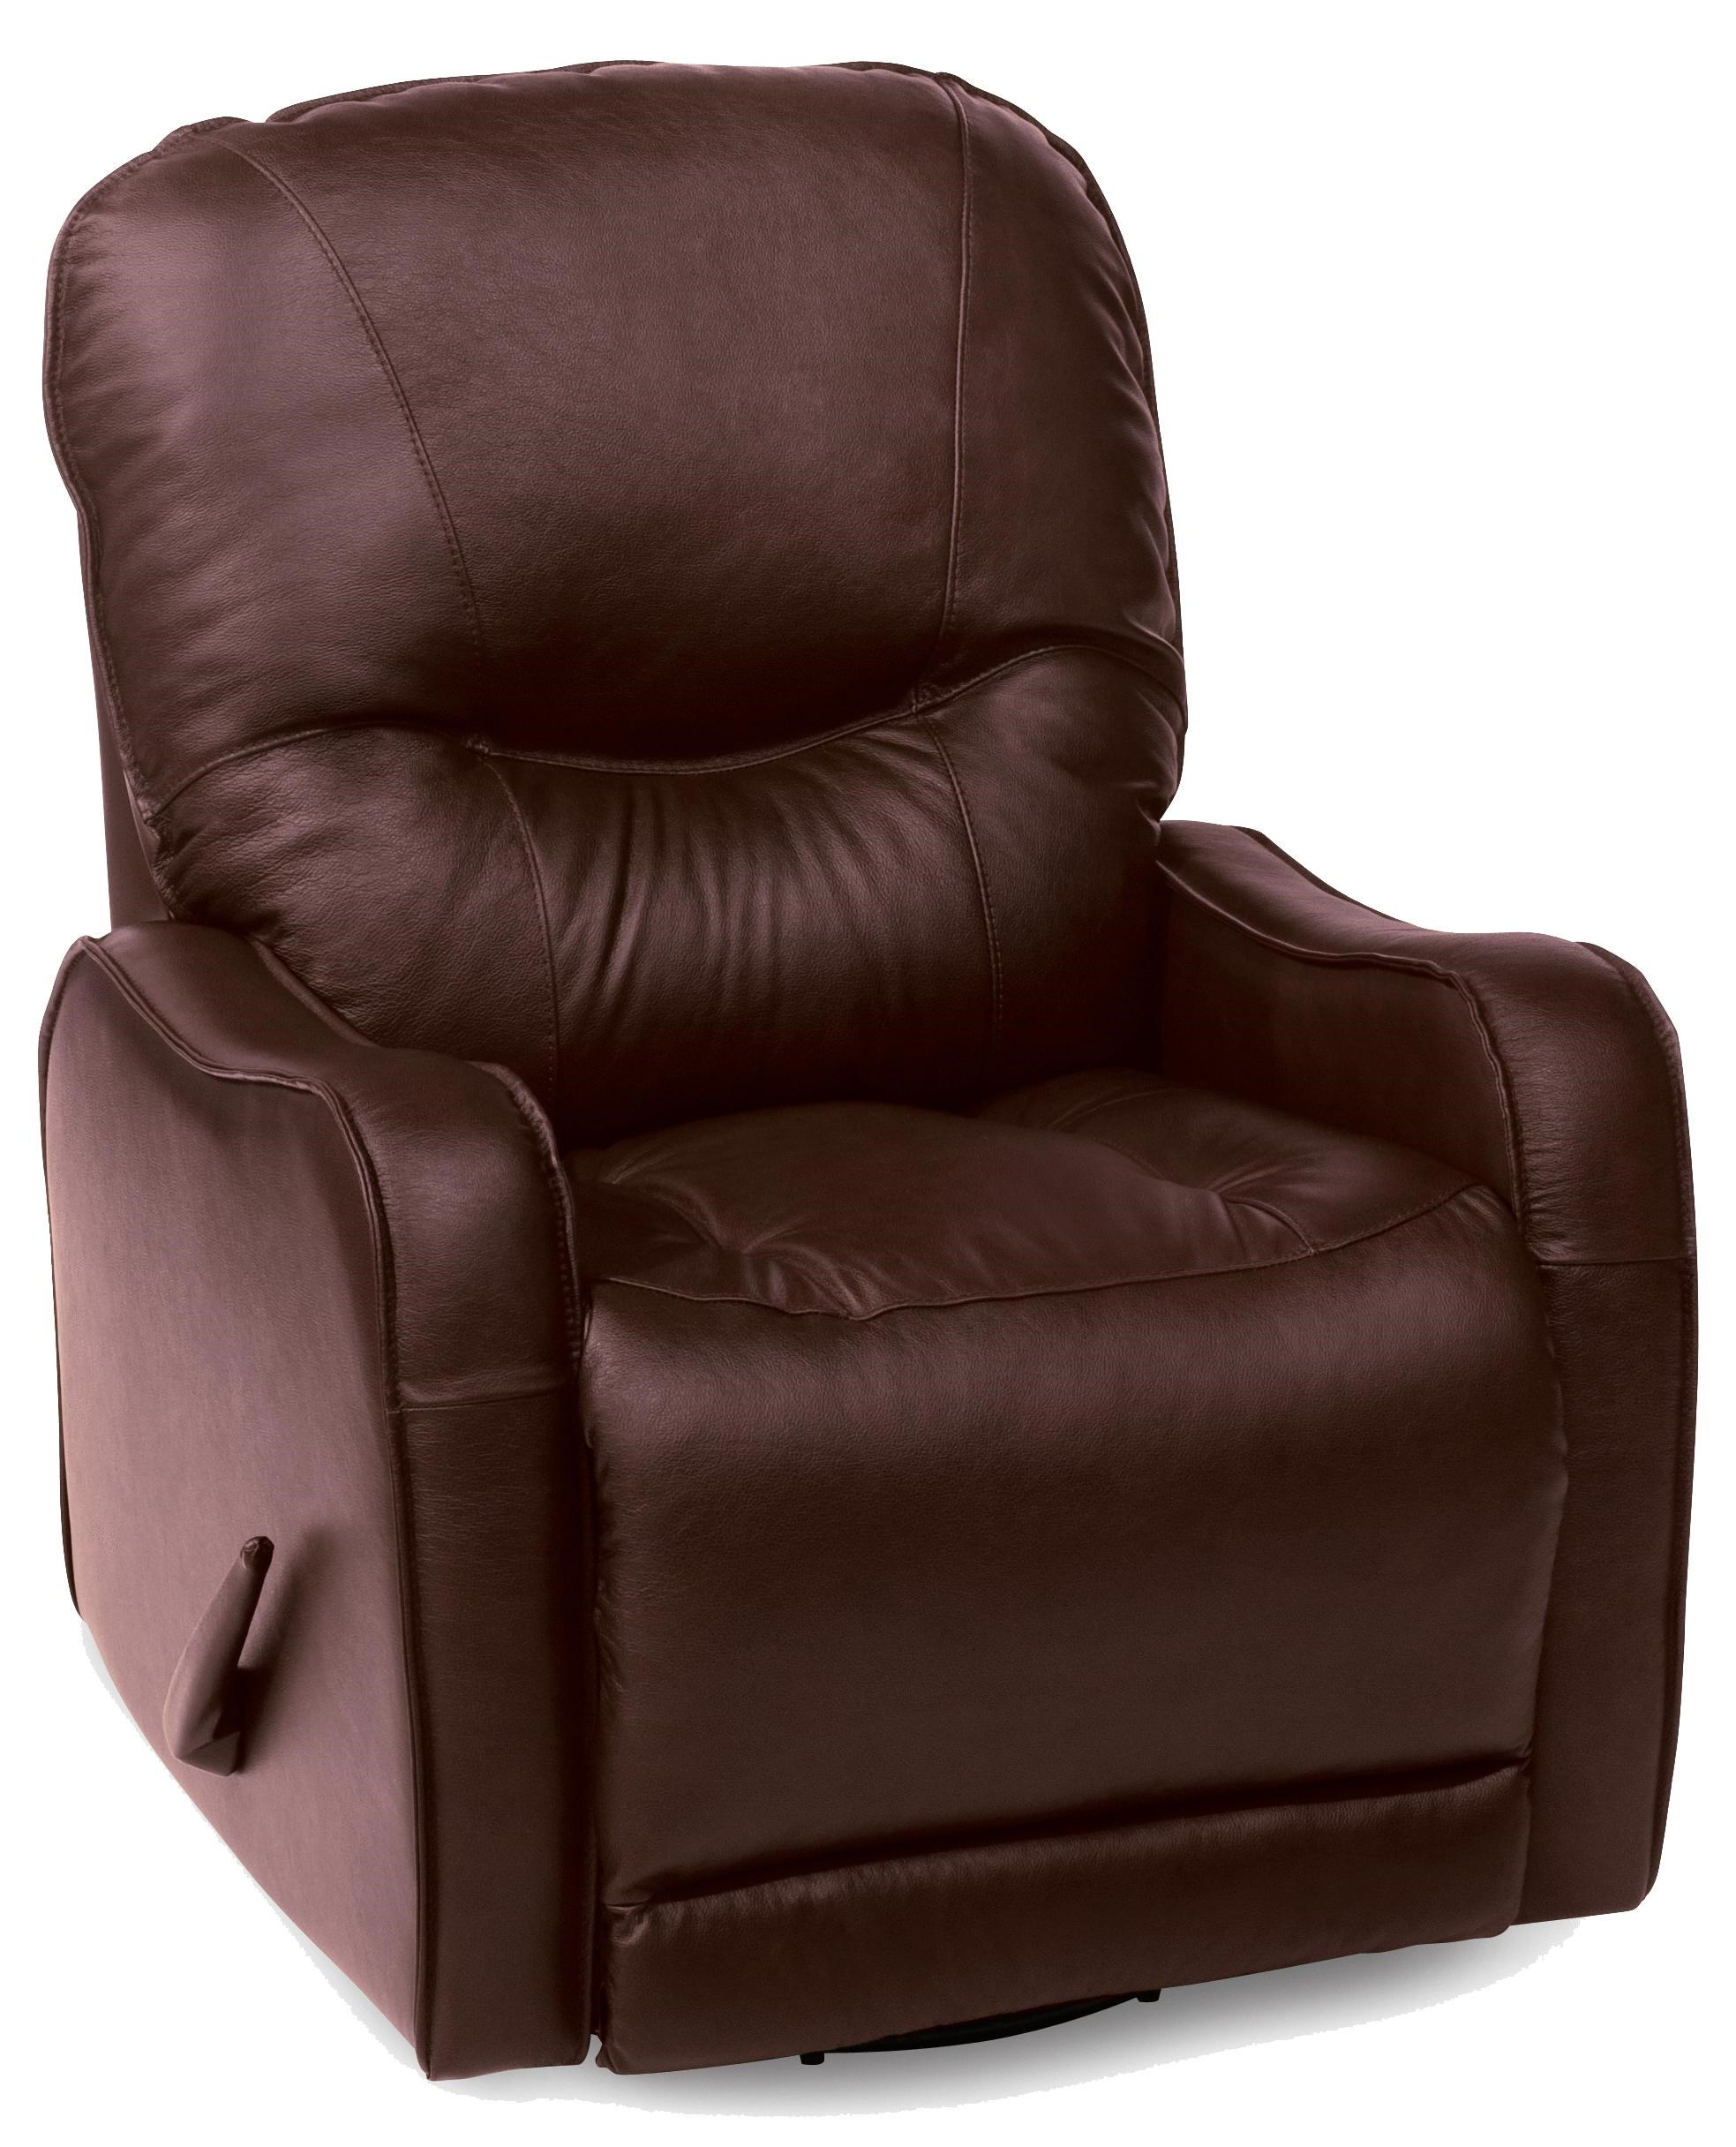 Palliser Yates 43012 33 Casual Swivel Rocker Recliner with